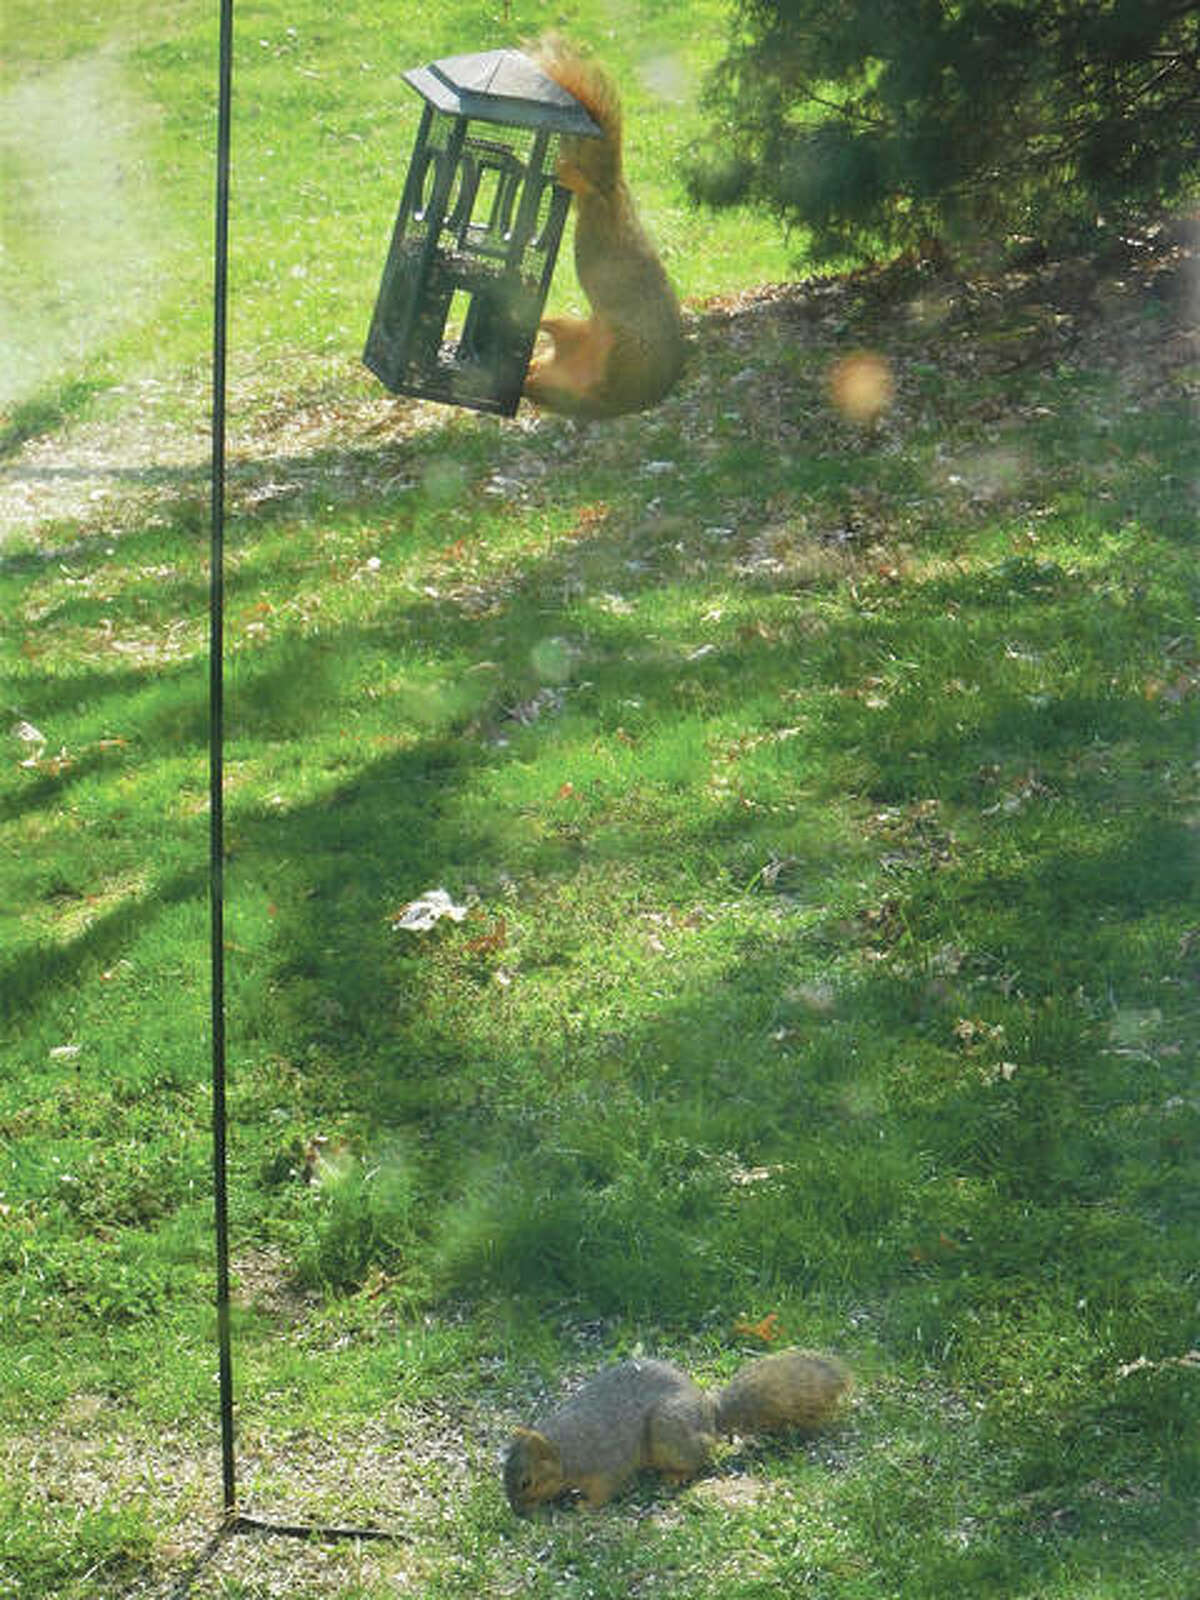 A squirrel throws food down for another squirrel to collect.